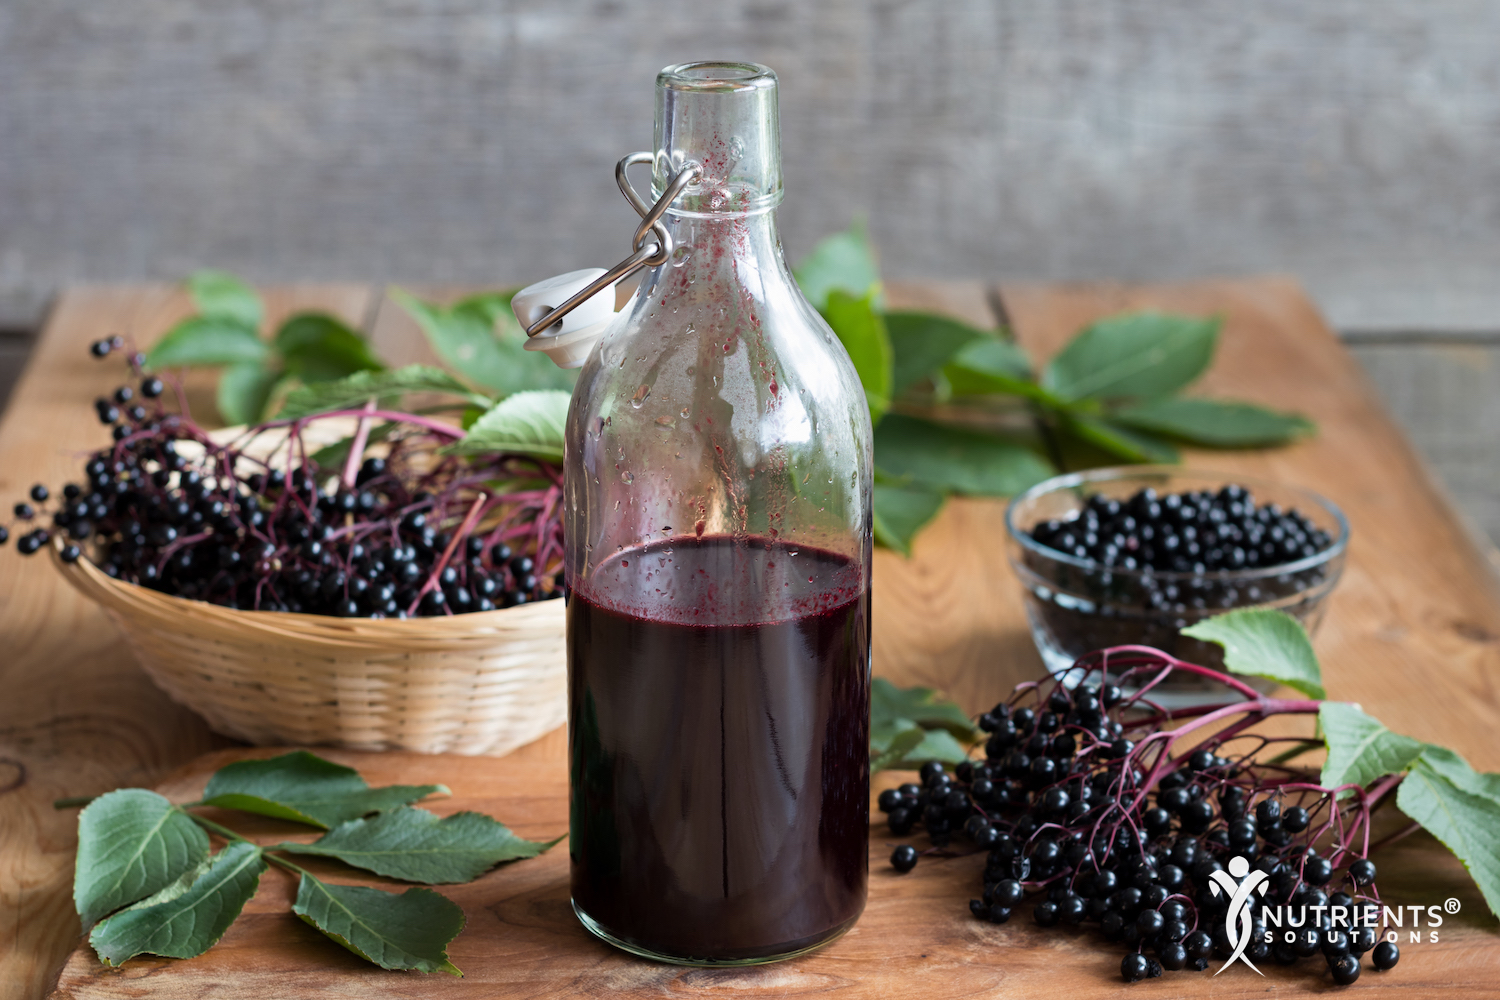 The Amazing Health-Promoting Properties of Elderberry